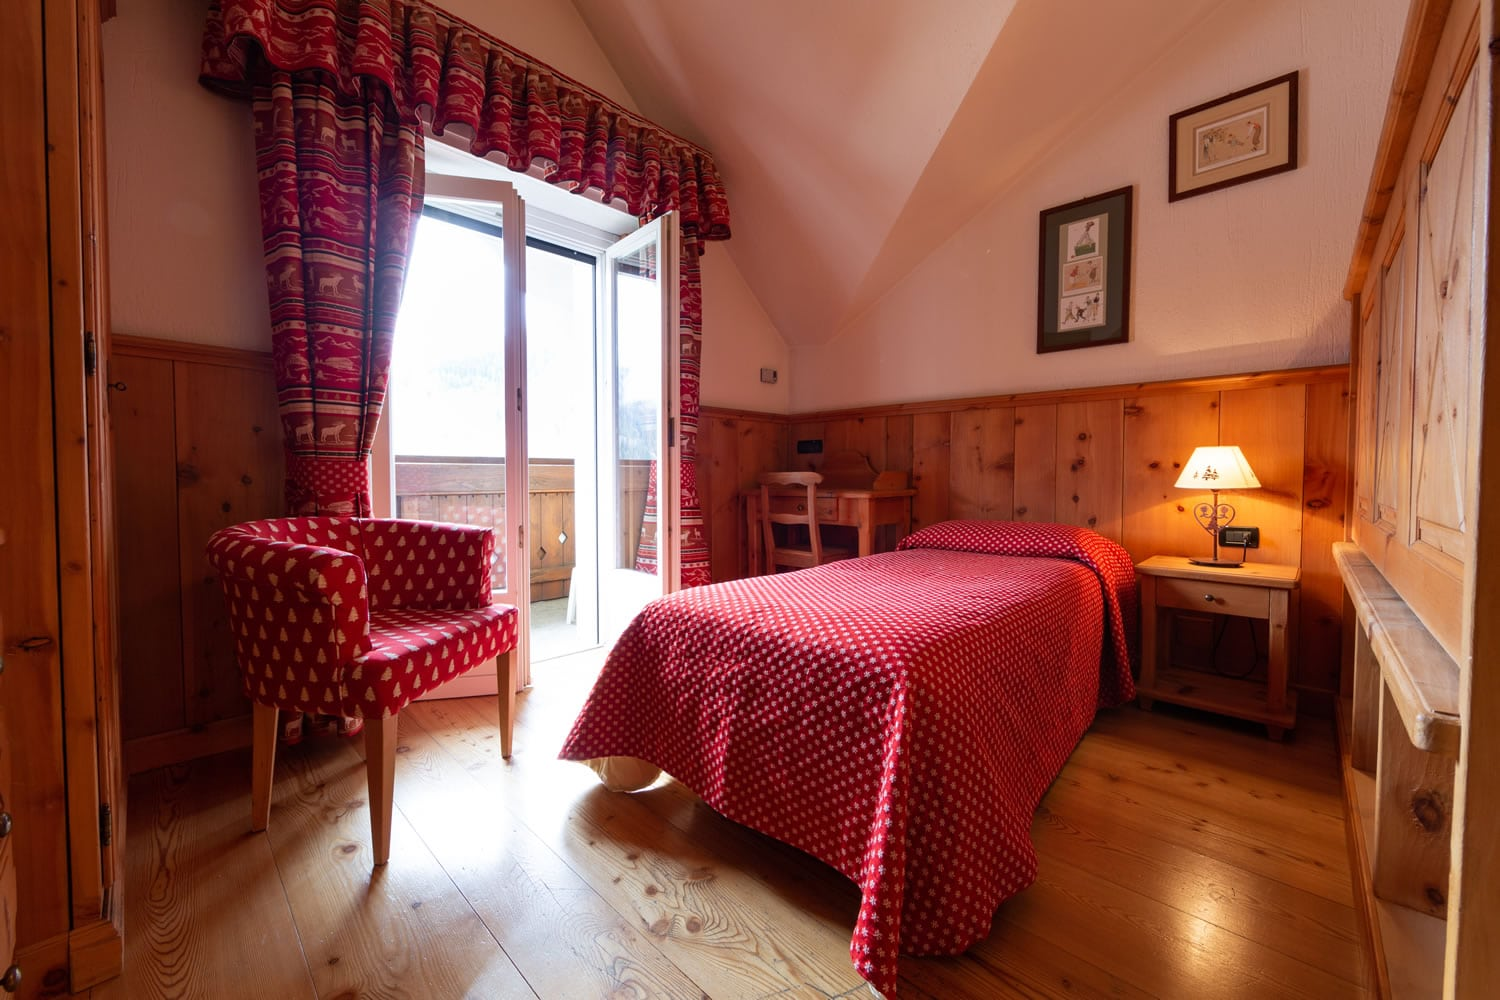 Hotel Bouton d'Or - Rooms